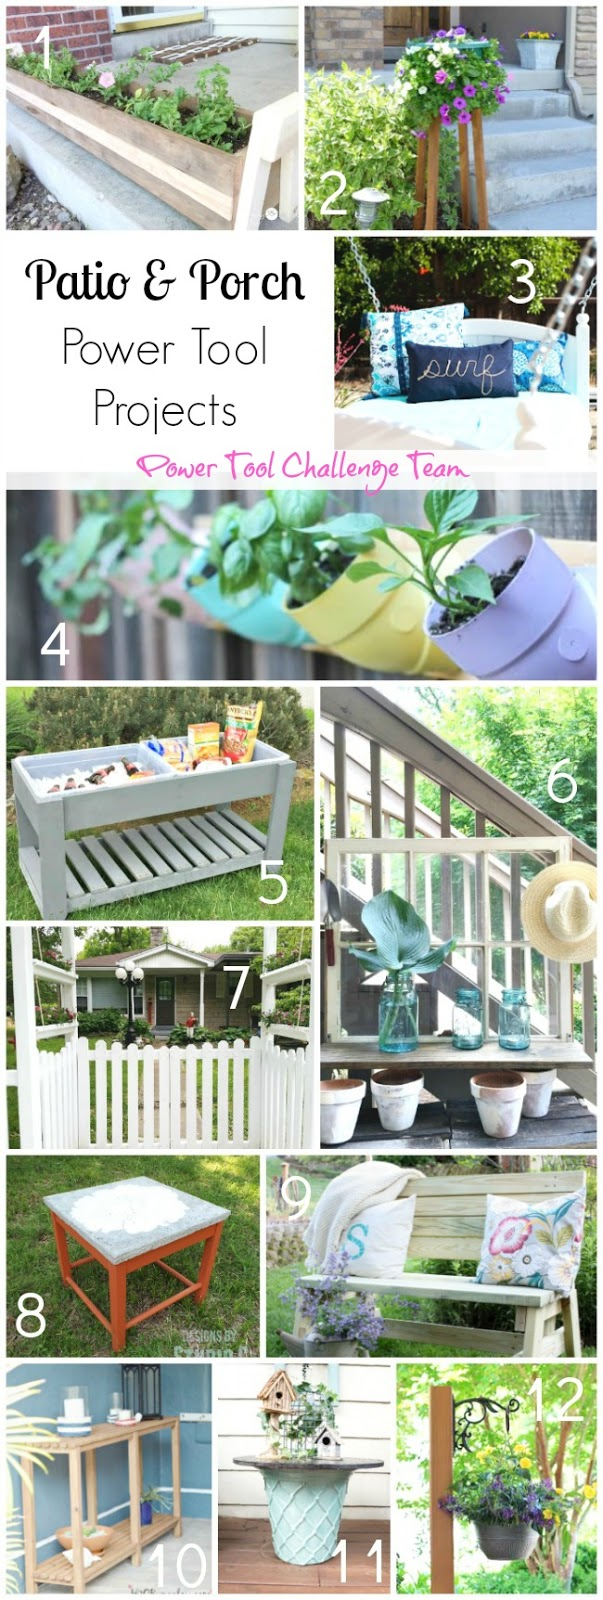 Patio and Porch Power Tool Projects and Long Porch Planters, My Love 2 Create